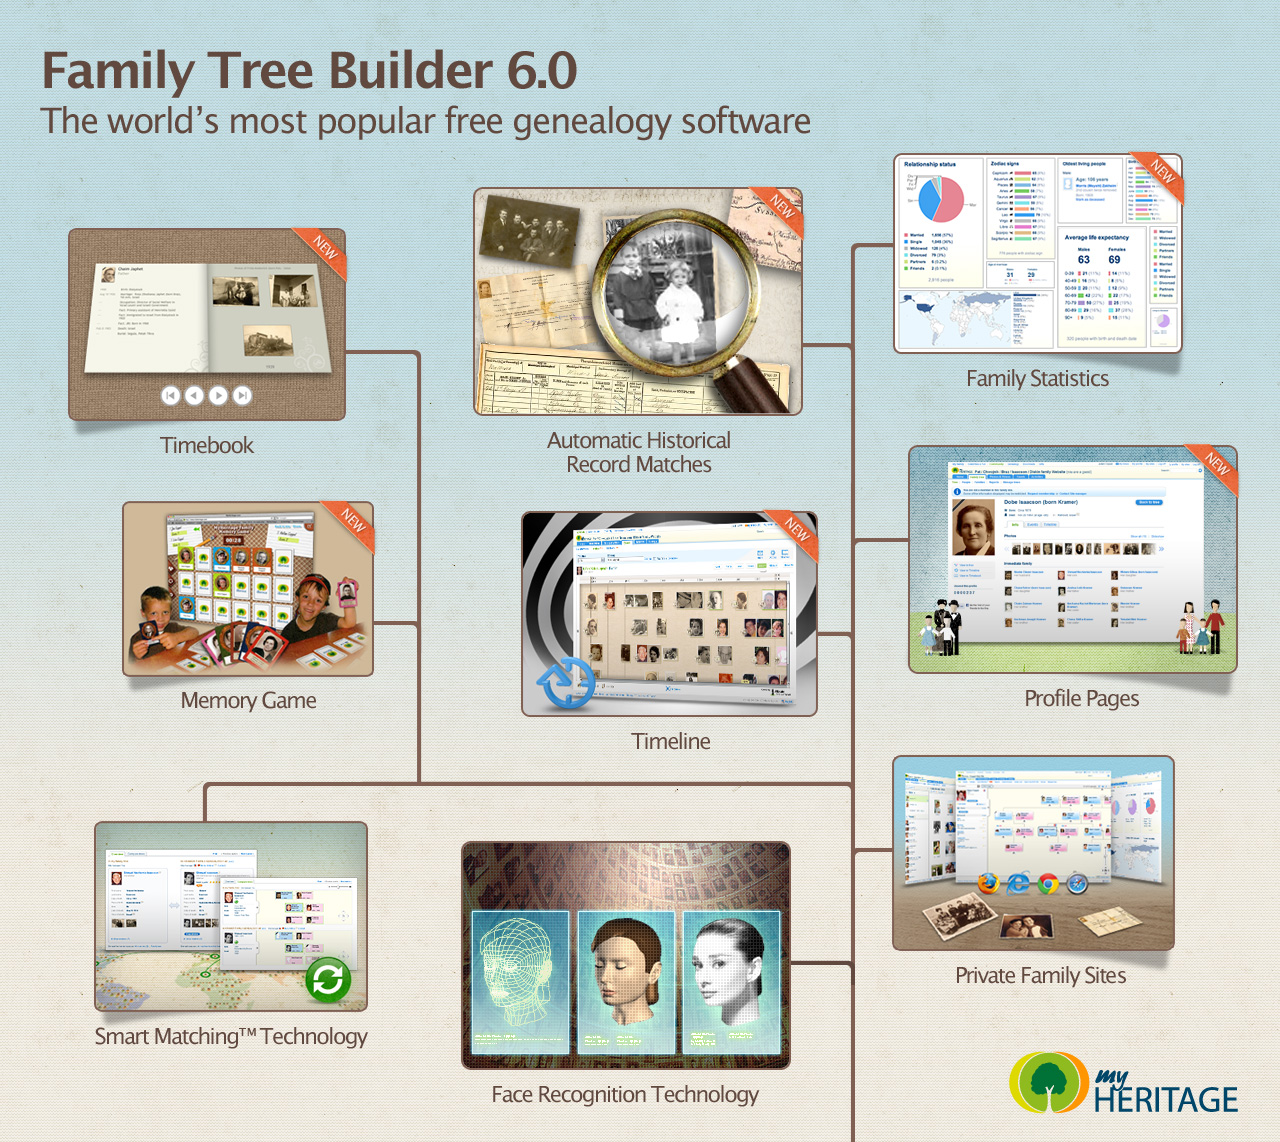 Family Tree Builder 6.0 (click to enlarge)